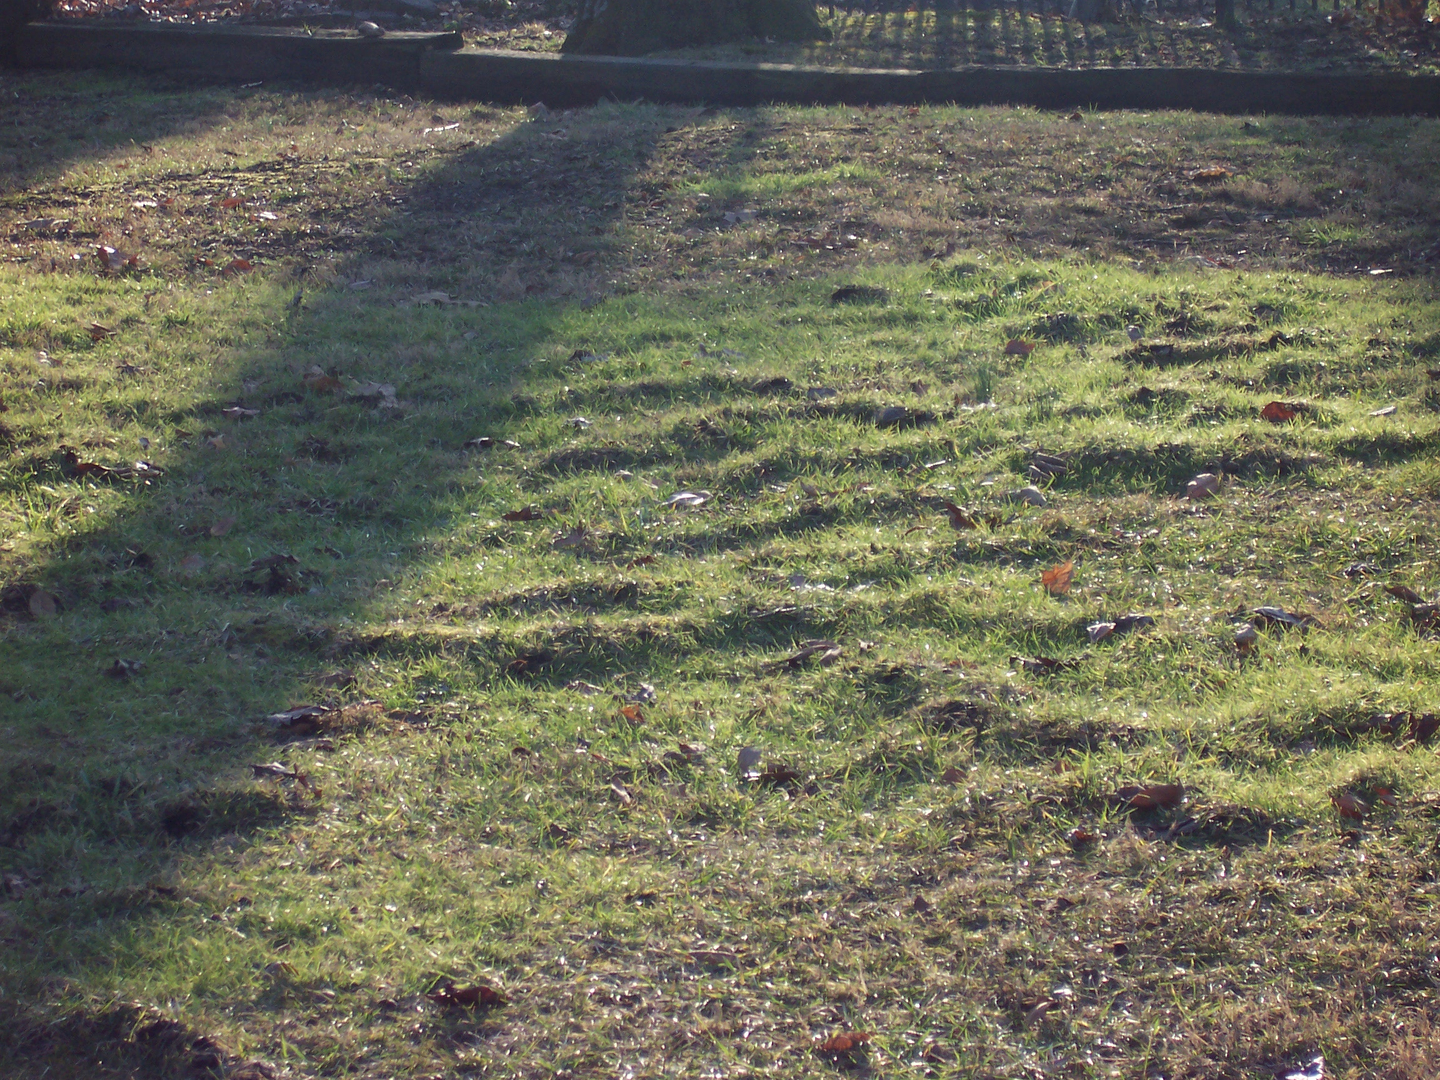 How to trap moles in your yard - 1 Mole S Damage In Nice Yard